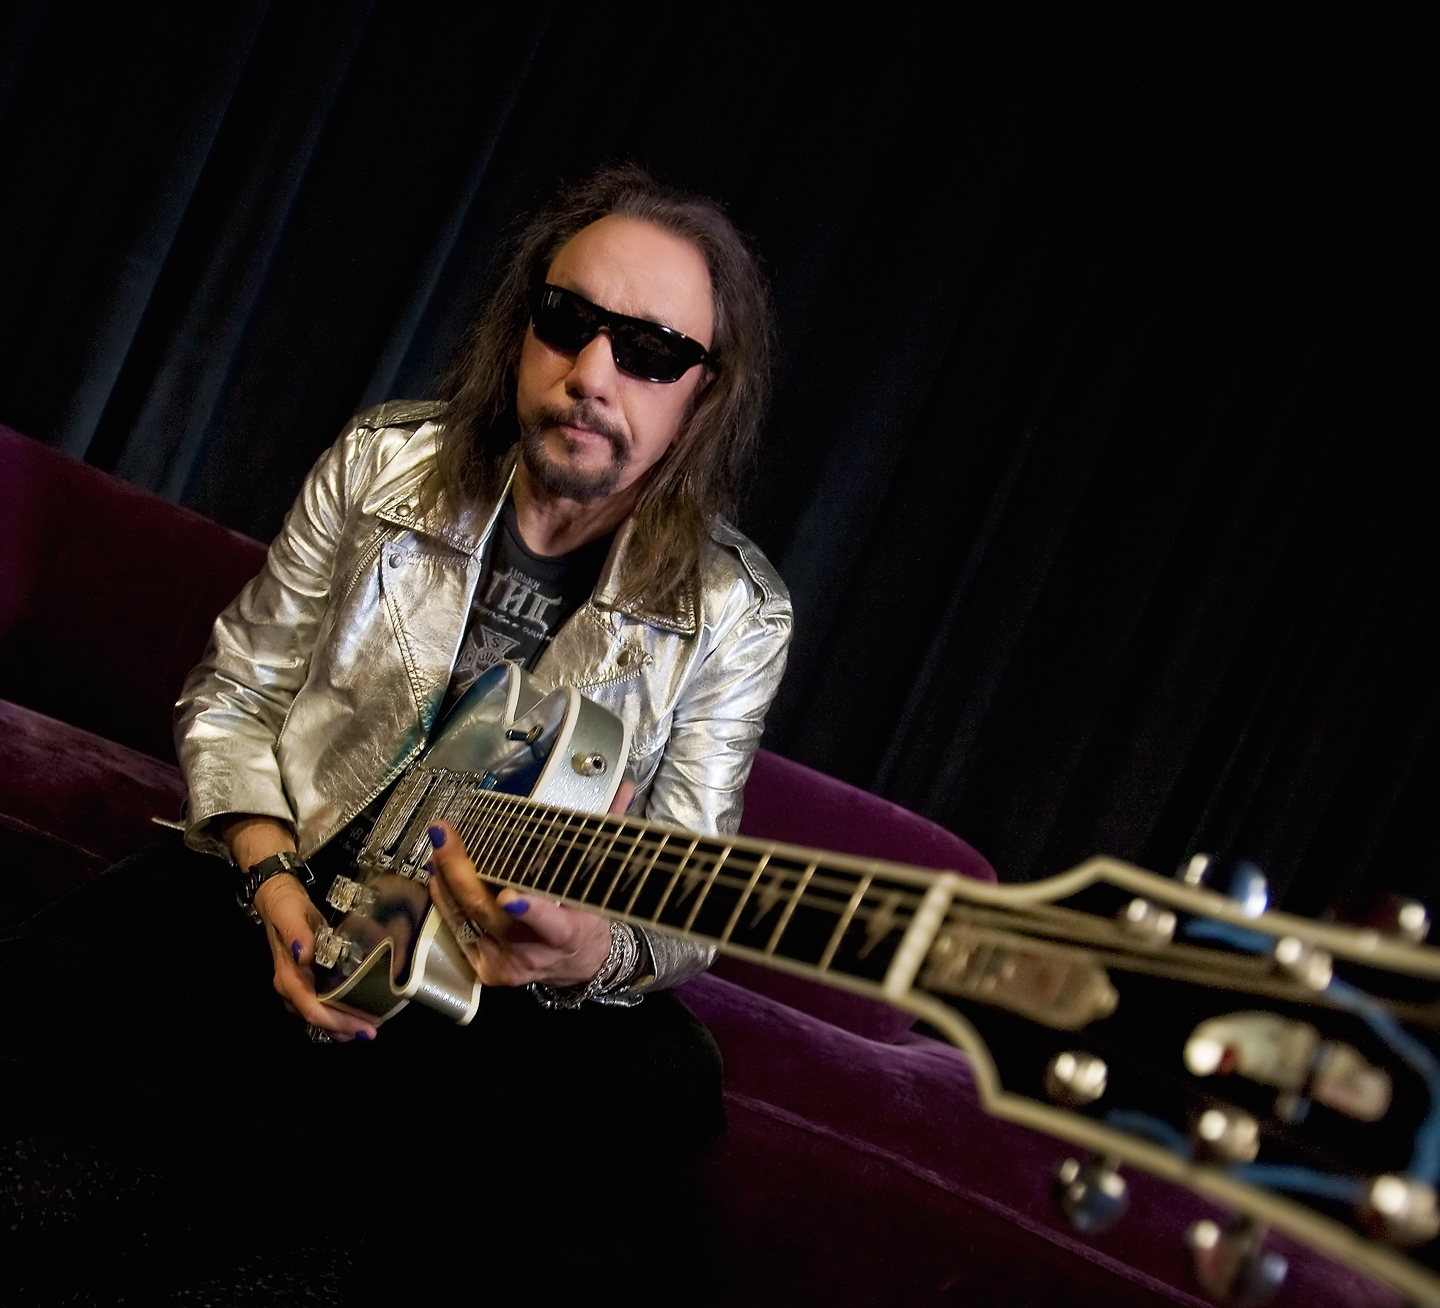 Ace Frehley photo by Kevin Britton.